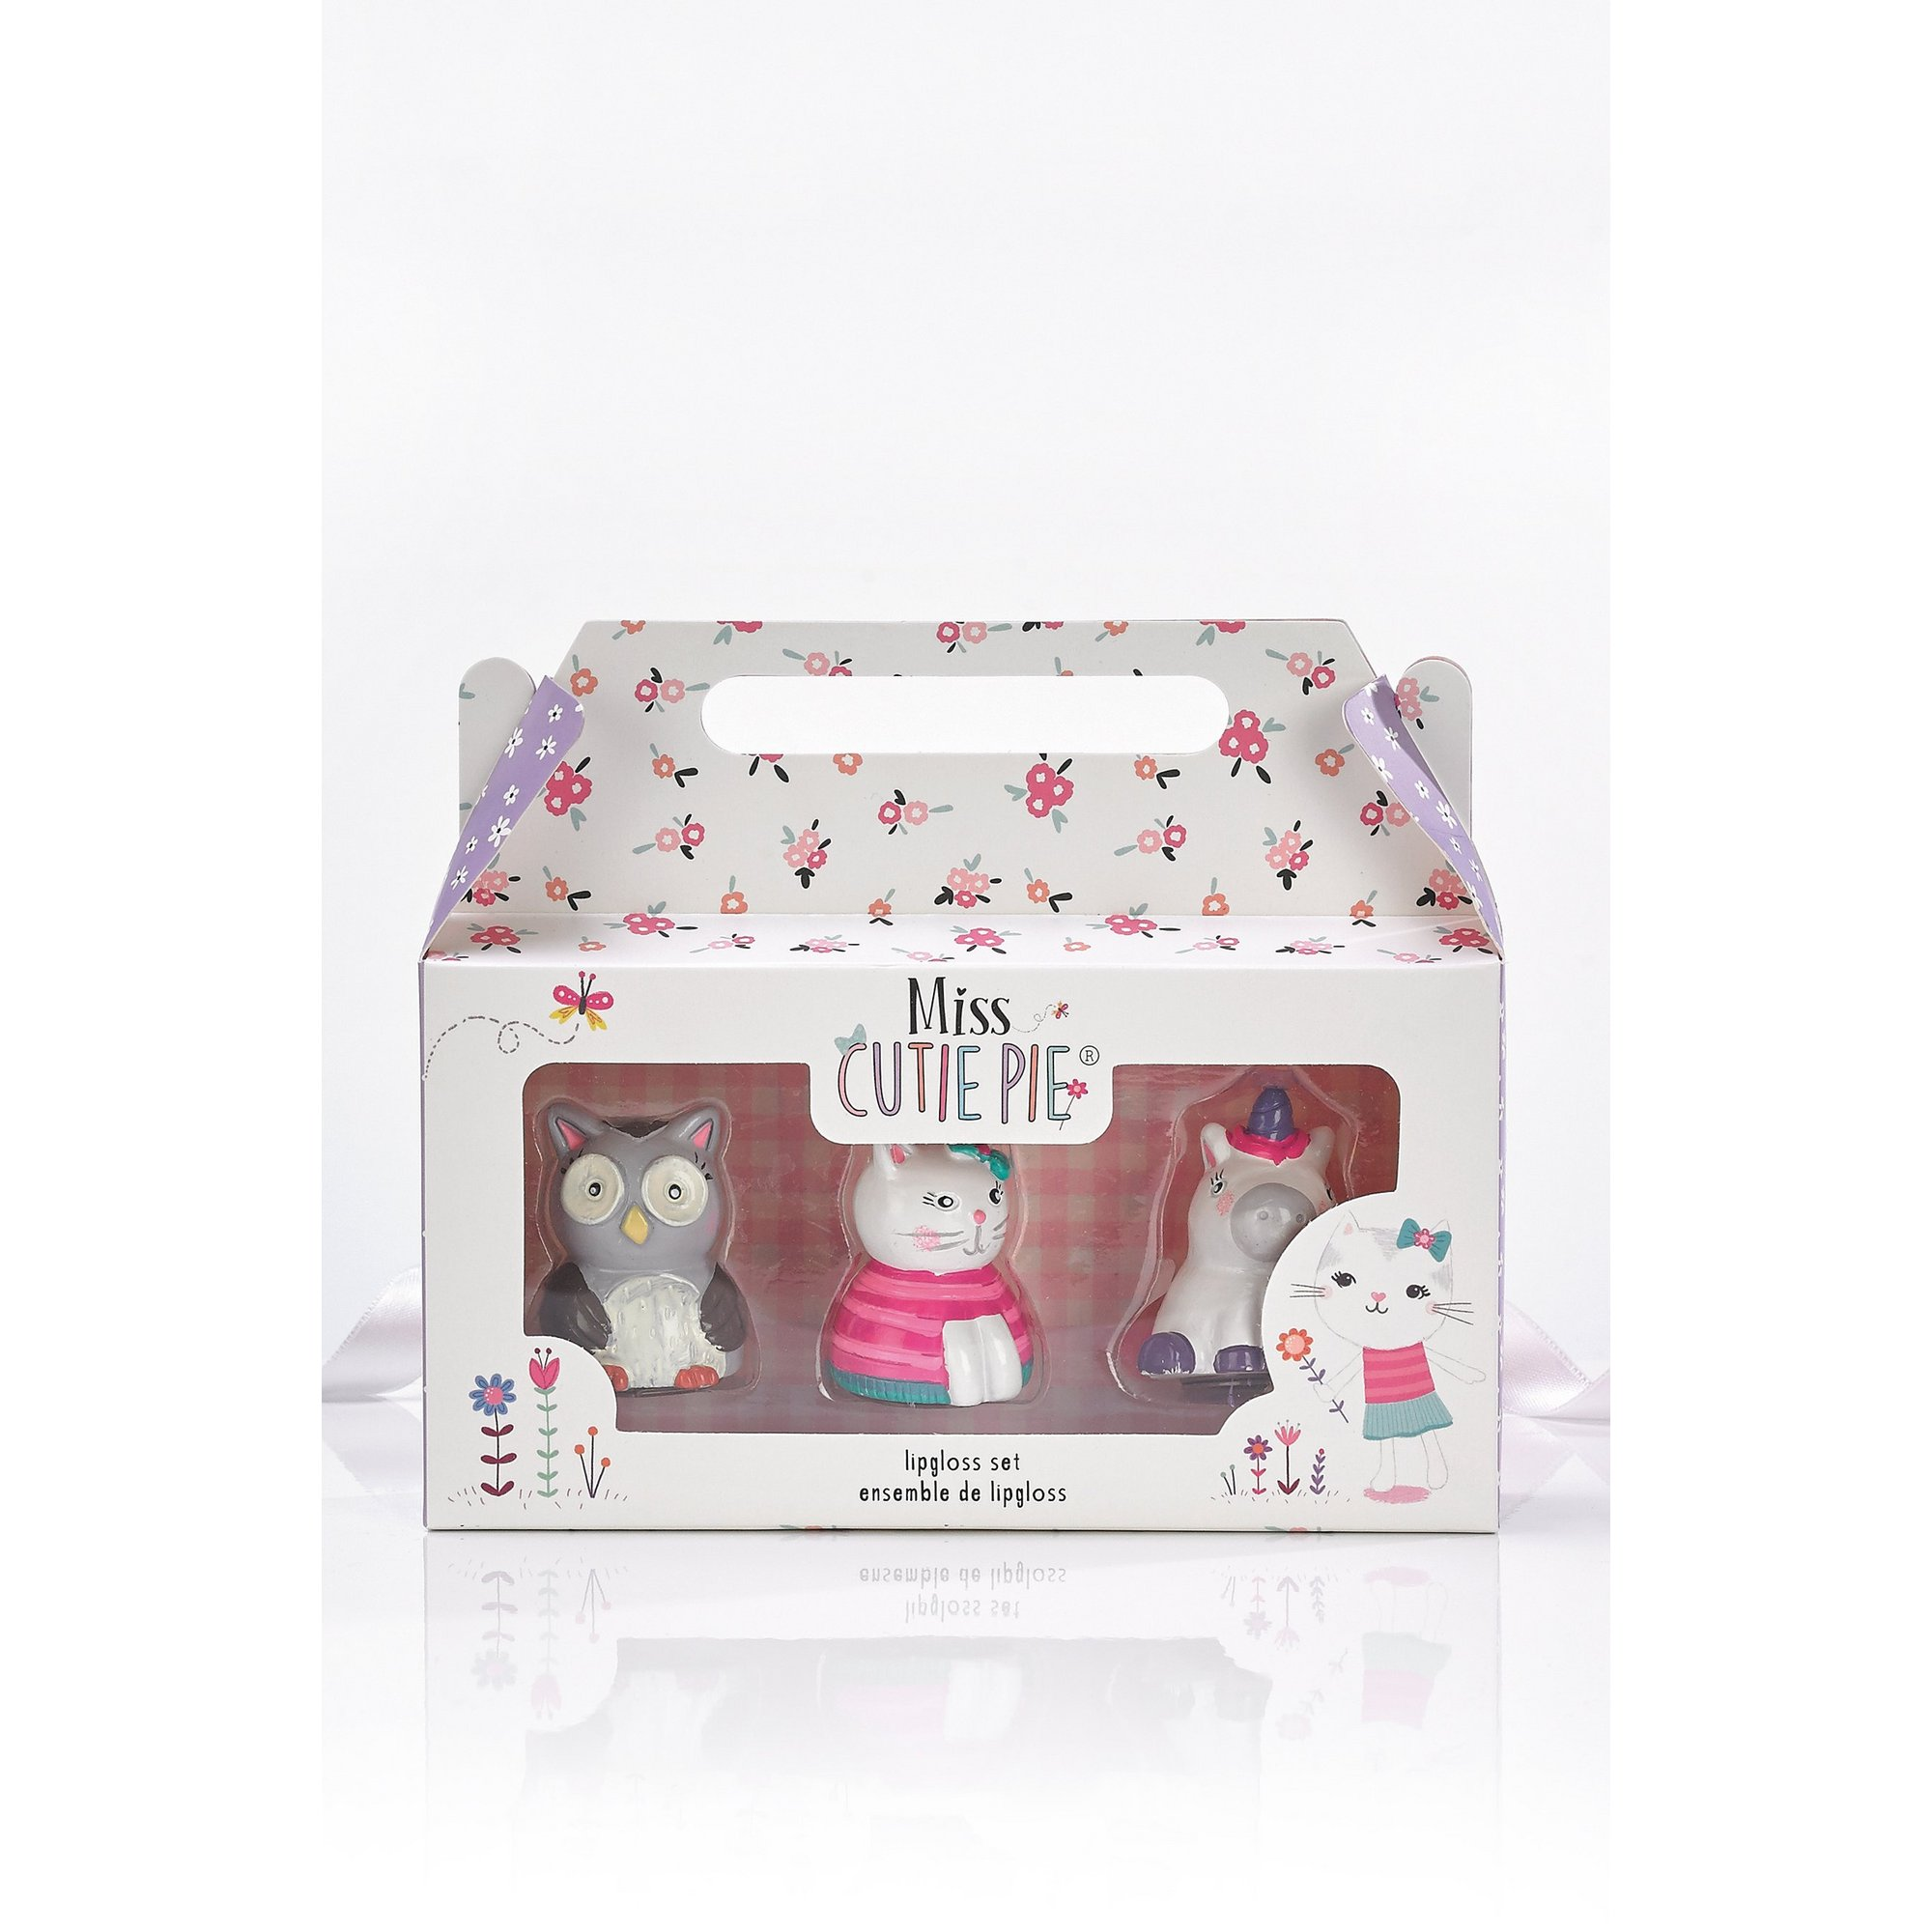 Image of Miss Cutie Pie Lip Gloss Character Set